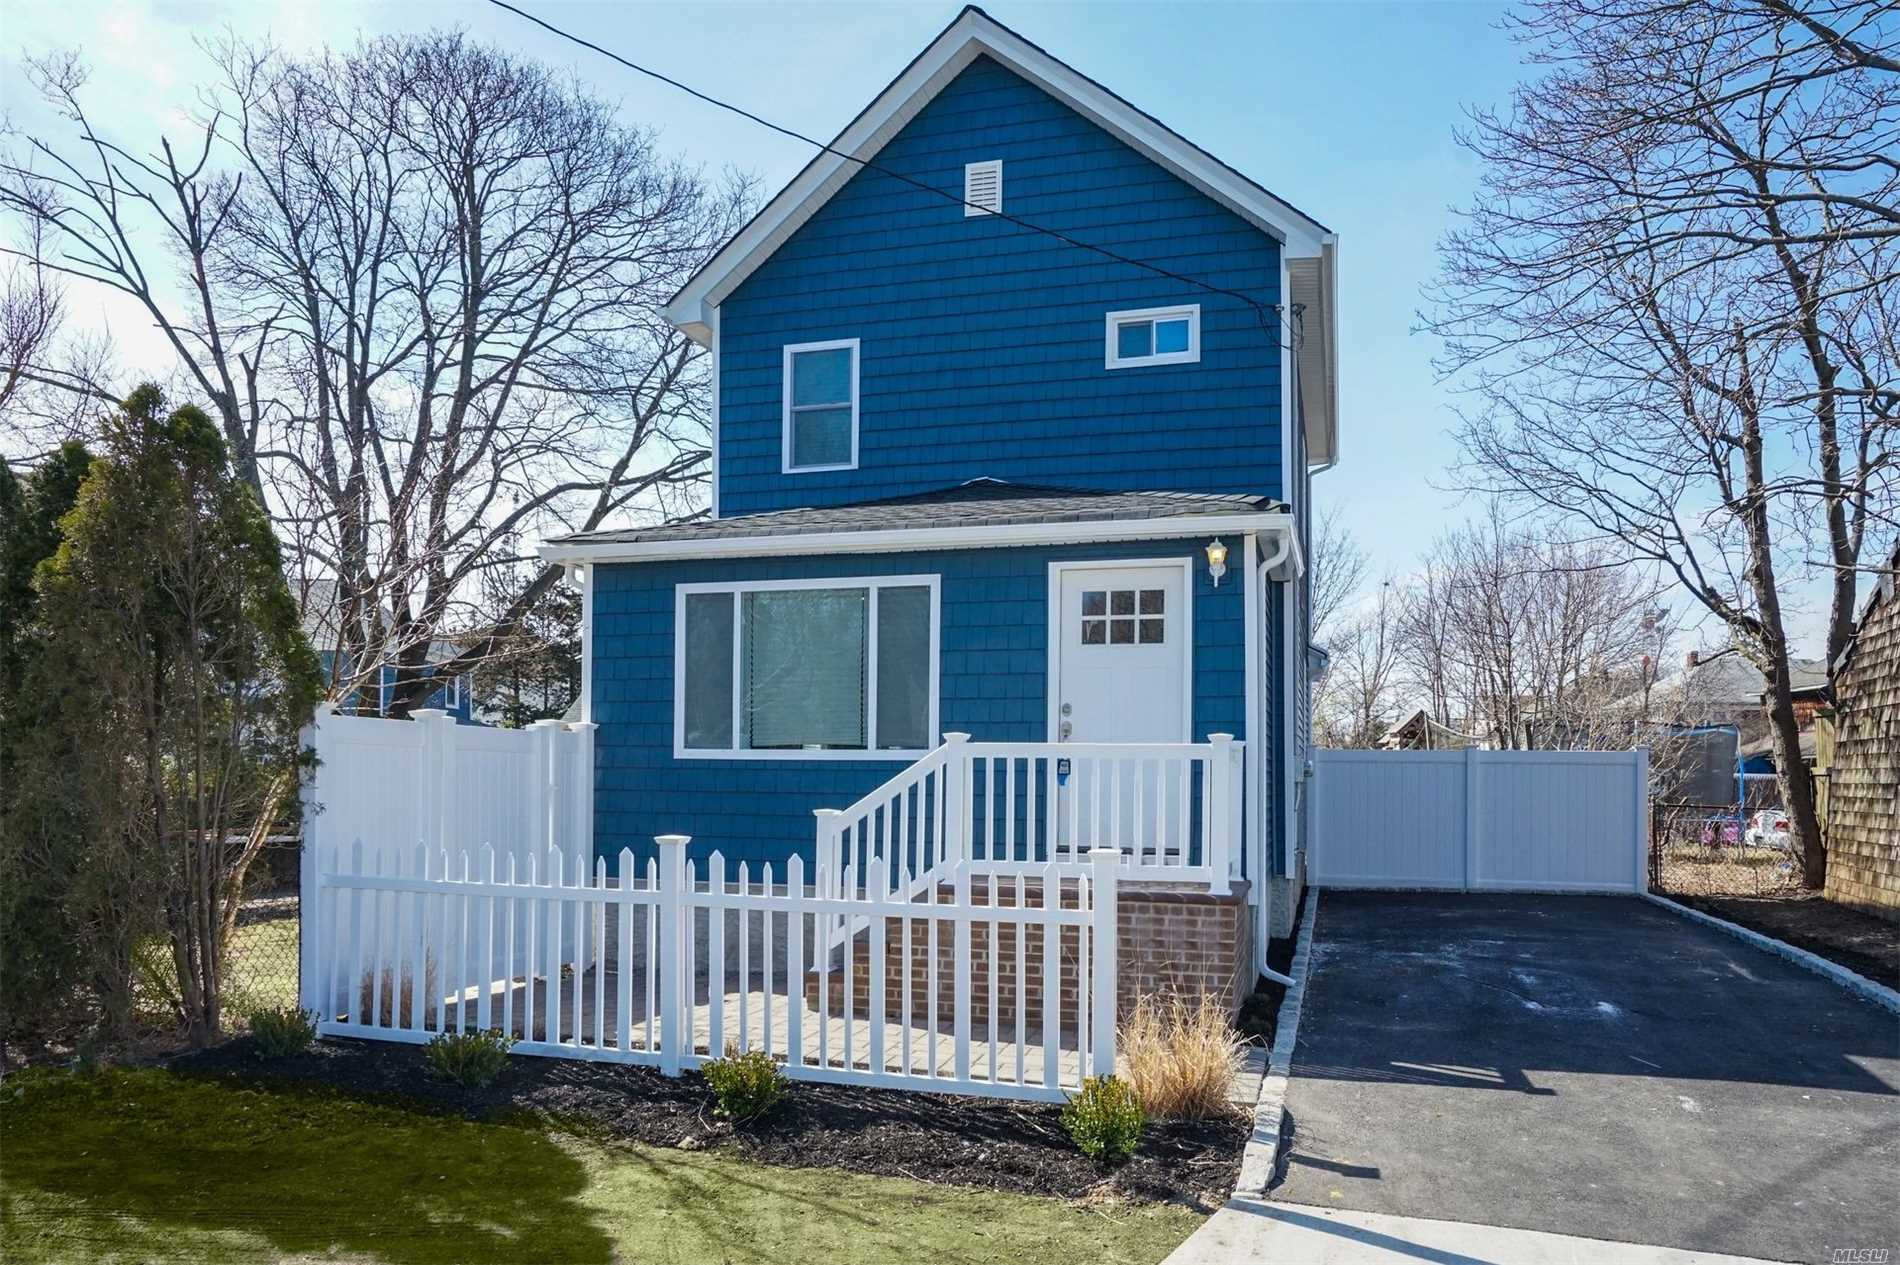 Renovated down to the studs and redone with high quality! Open Floor Plan with 2 Full Baths and Beautiful Kitchen with Quartz counter tops. 0.7 miles to the heart of Patchogue Village. Don't wait to see this house...priced to sell!